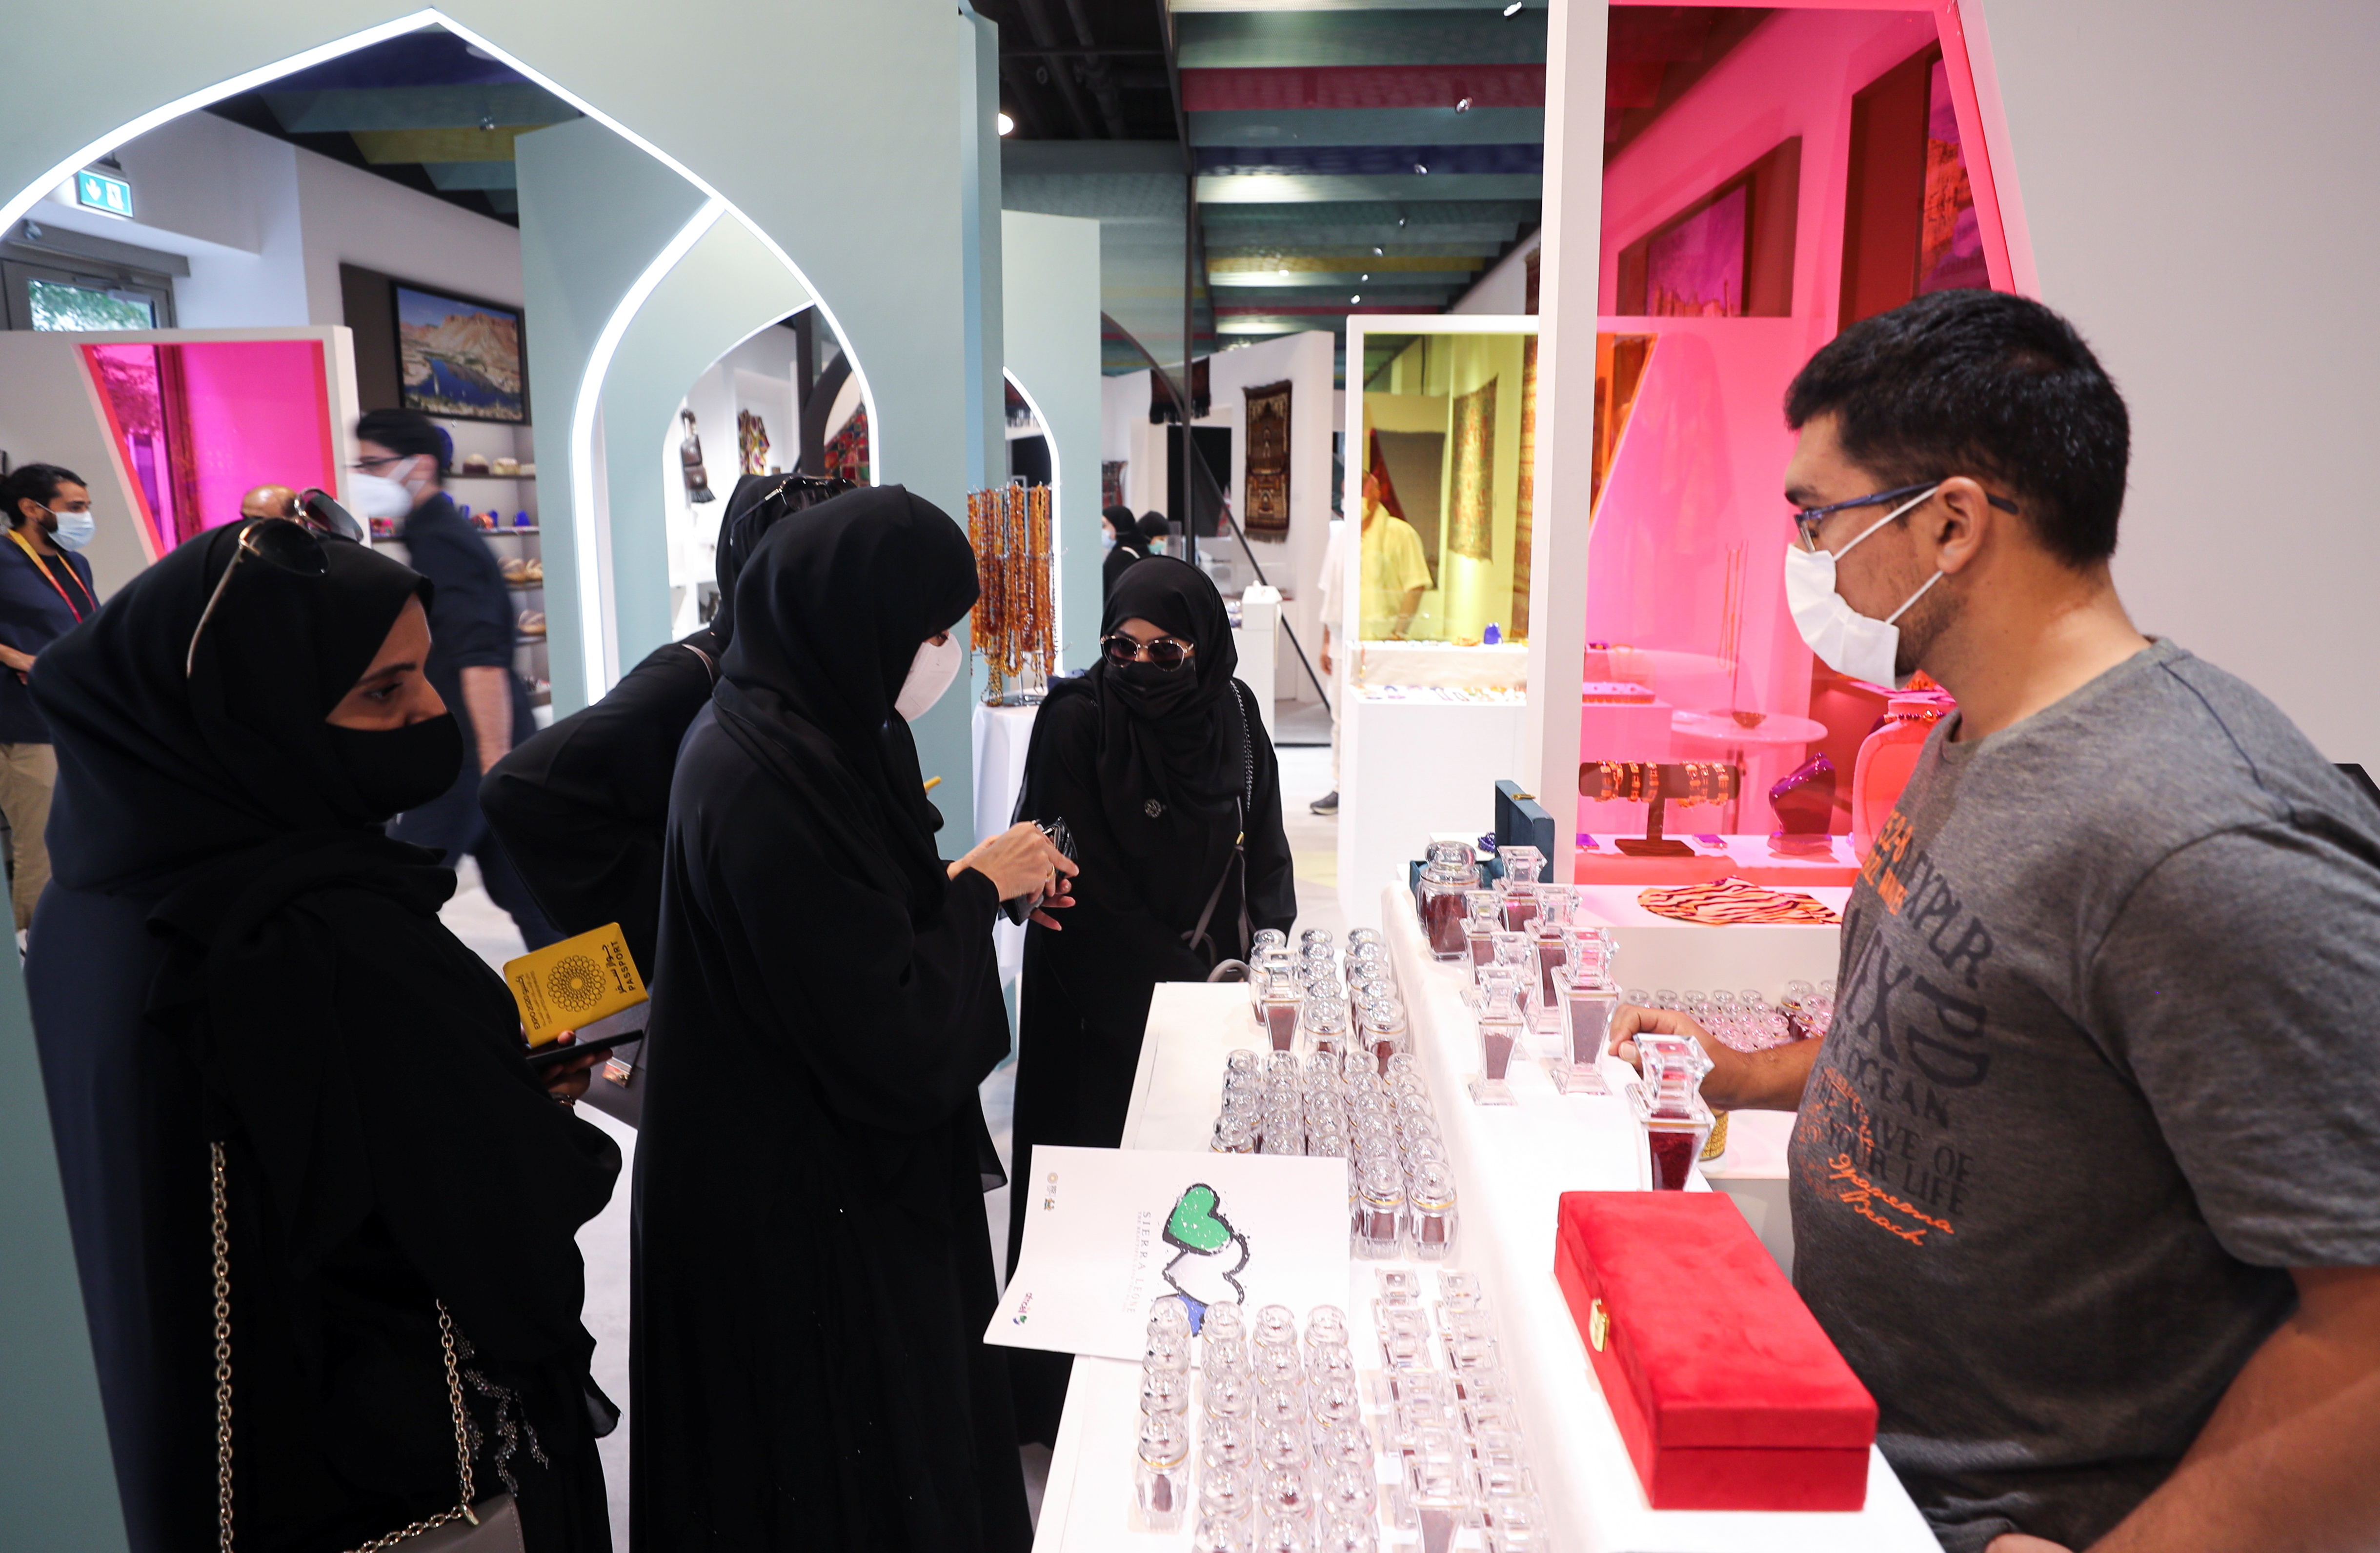 Visitors are shown looking at a private collection of Afghan artefacts at the Afghanistan Pavilion during the Dubai Expo 2020, in Dubai, United Arab Emirates, October 12, 2021. Picture taken October 12, 2021. REUTERS/Mohammed Salem